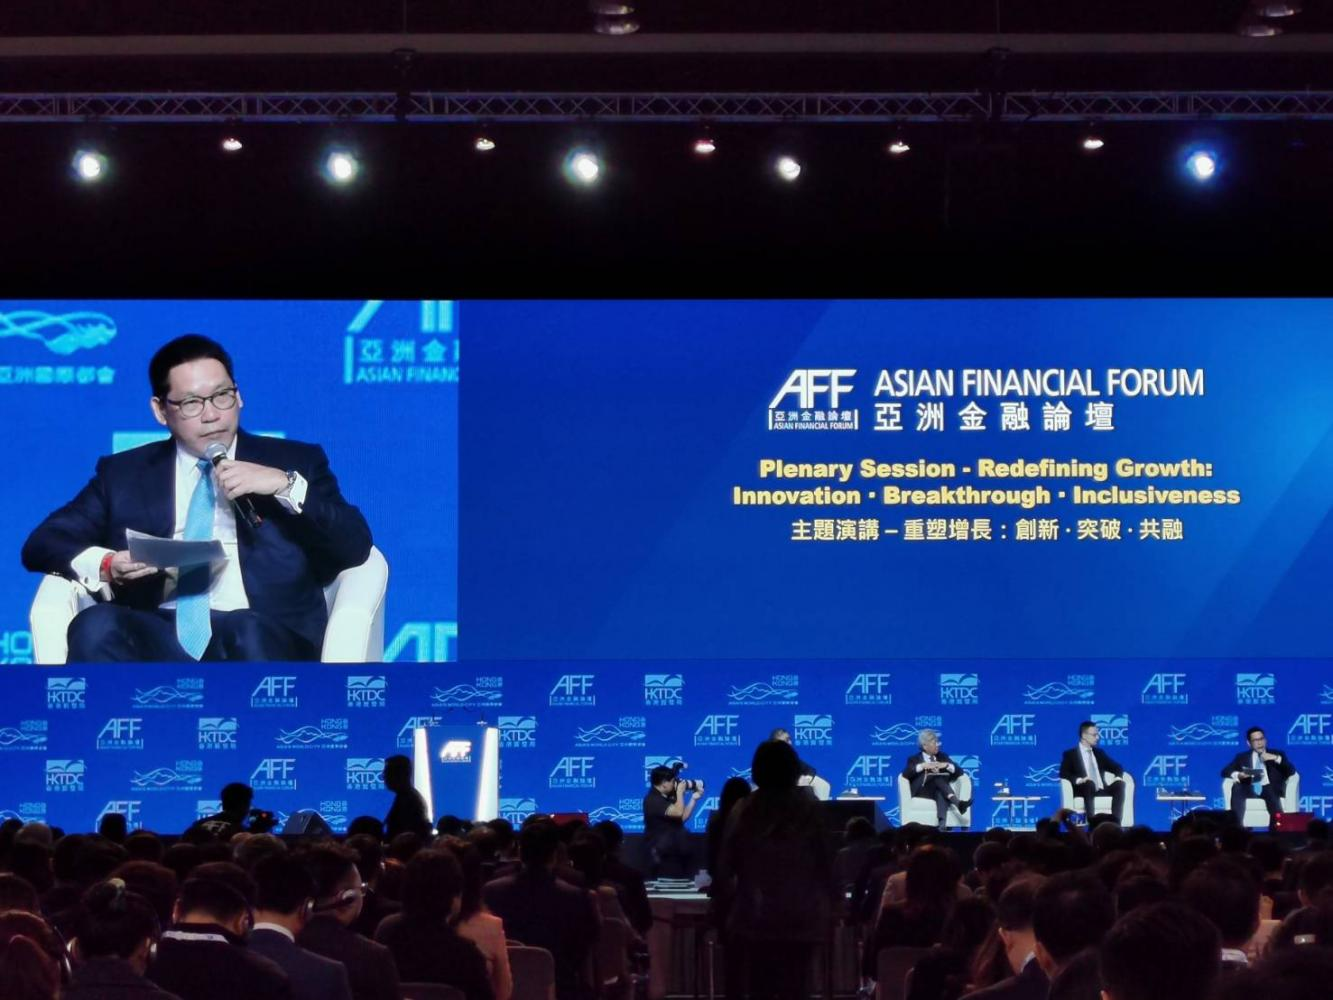 Mr Uttama gave the keynote speech at the Asian Financial Forum, which ends today. Wichit Chantanusornsiri